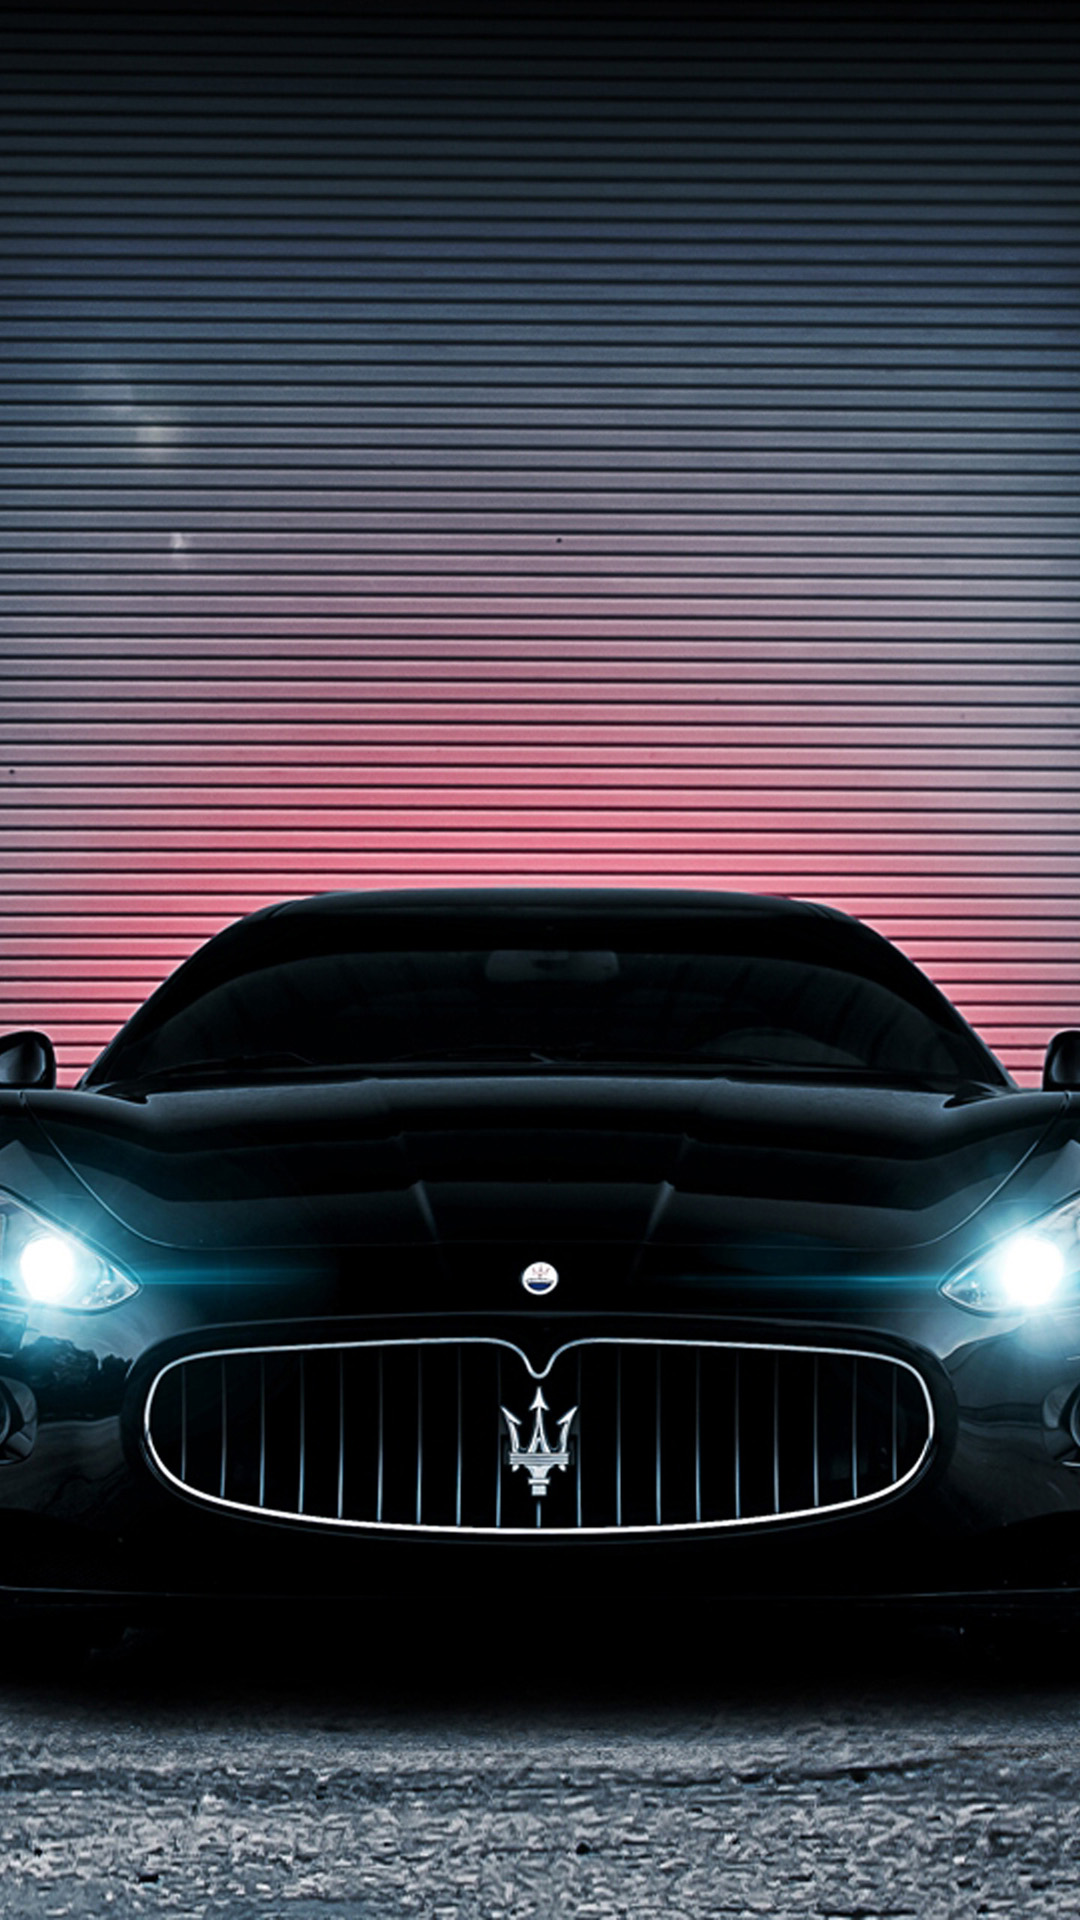 Hd wallpapers for iphone 6 - Maserati Gran Turismo Hd Wallpaper Iphone 6 Plus